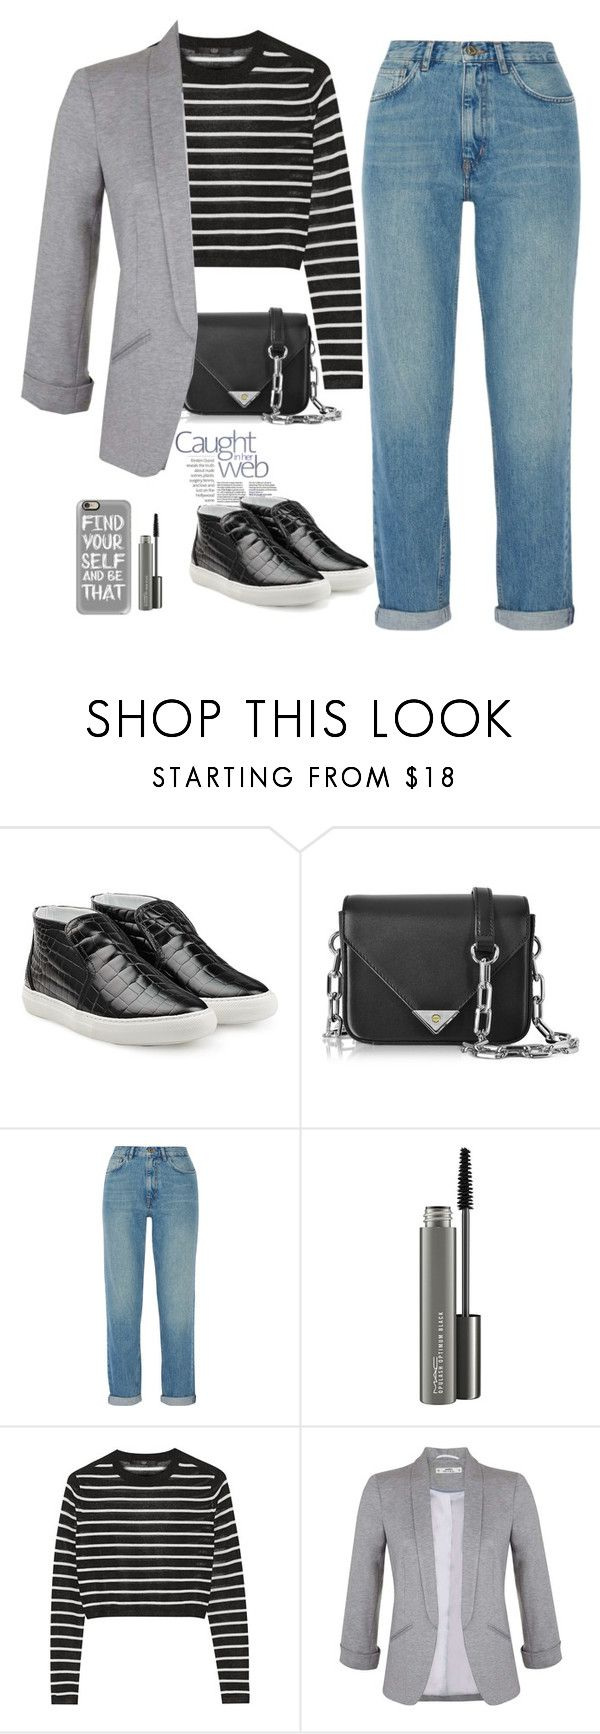 """""""Untitled #503"""" by jovana-p-com ❤ liked on Polyvore featuring Pierre Hardy, Alexander Wang, M.i.h Jeans, MAC Cosmetics, TIBI, Miss Selfridge and Casetify"""